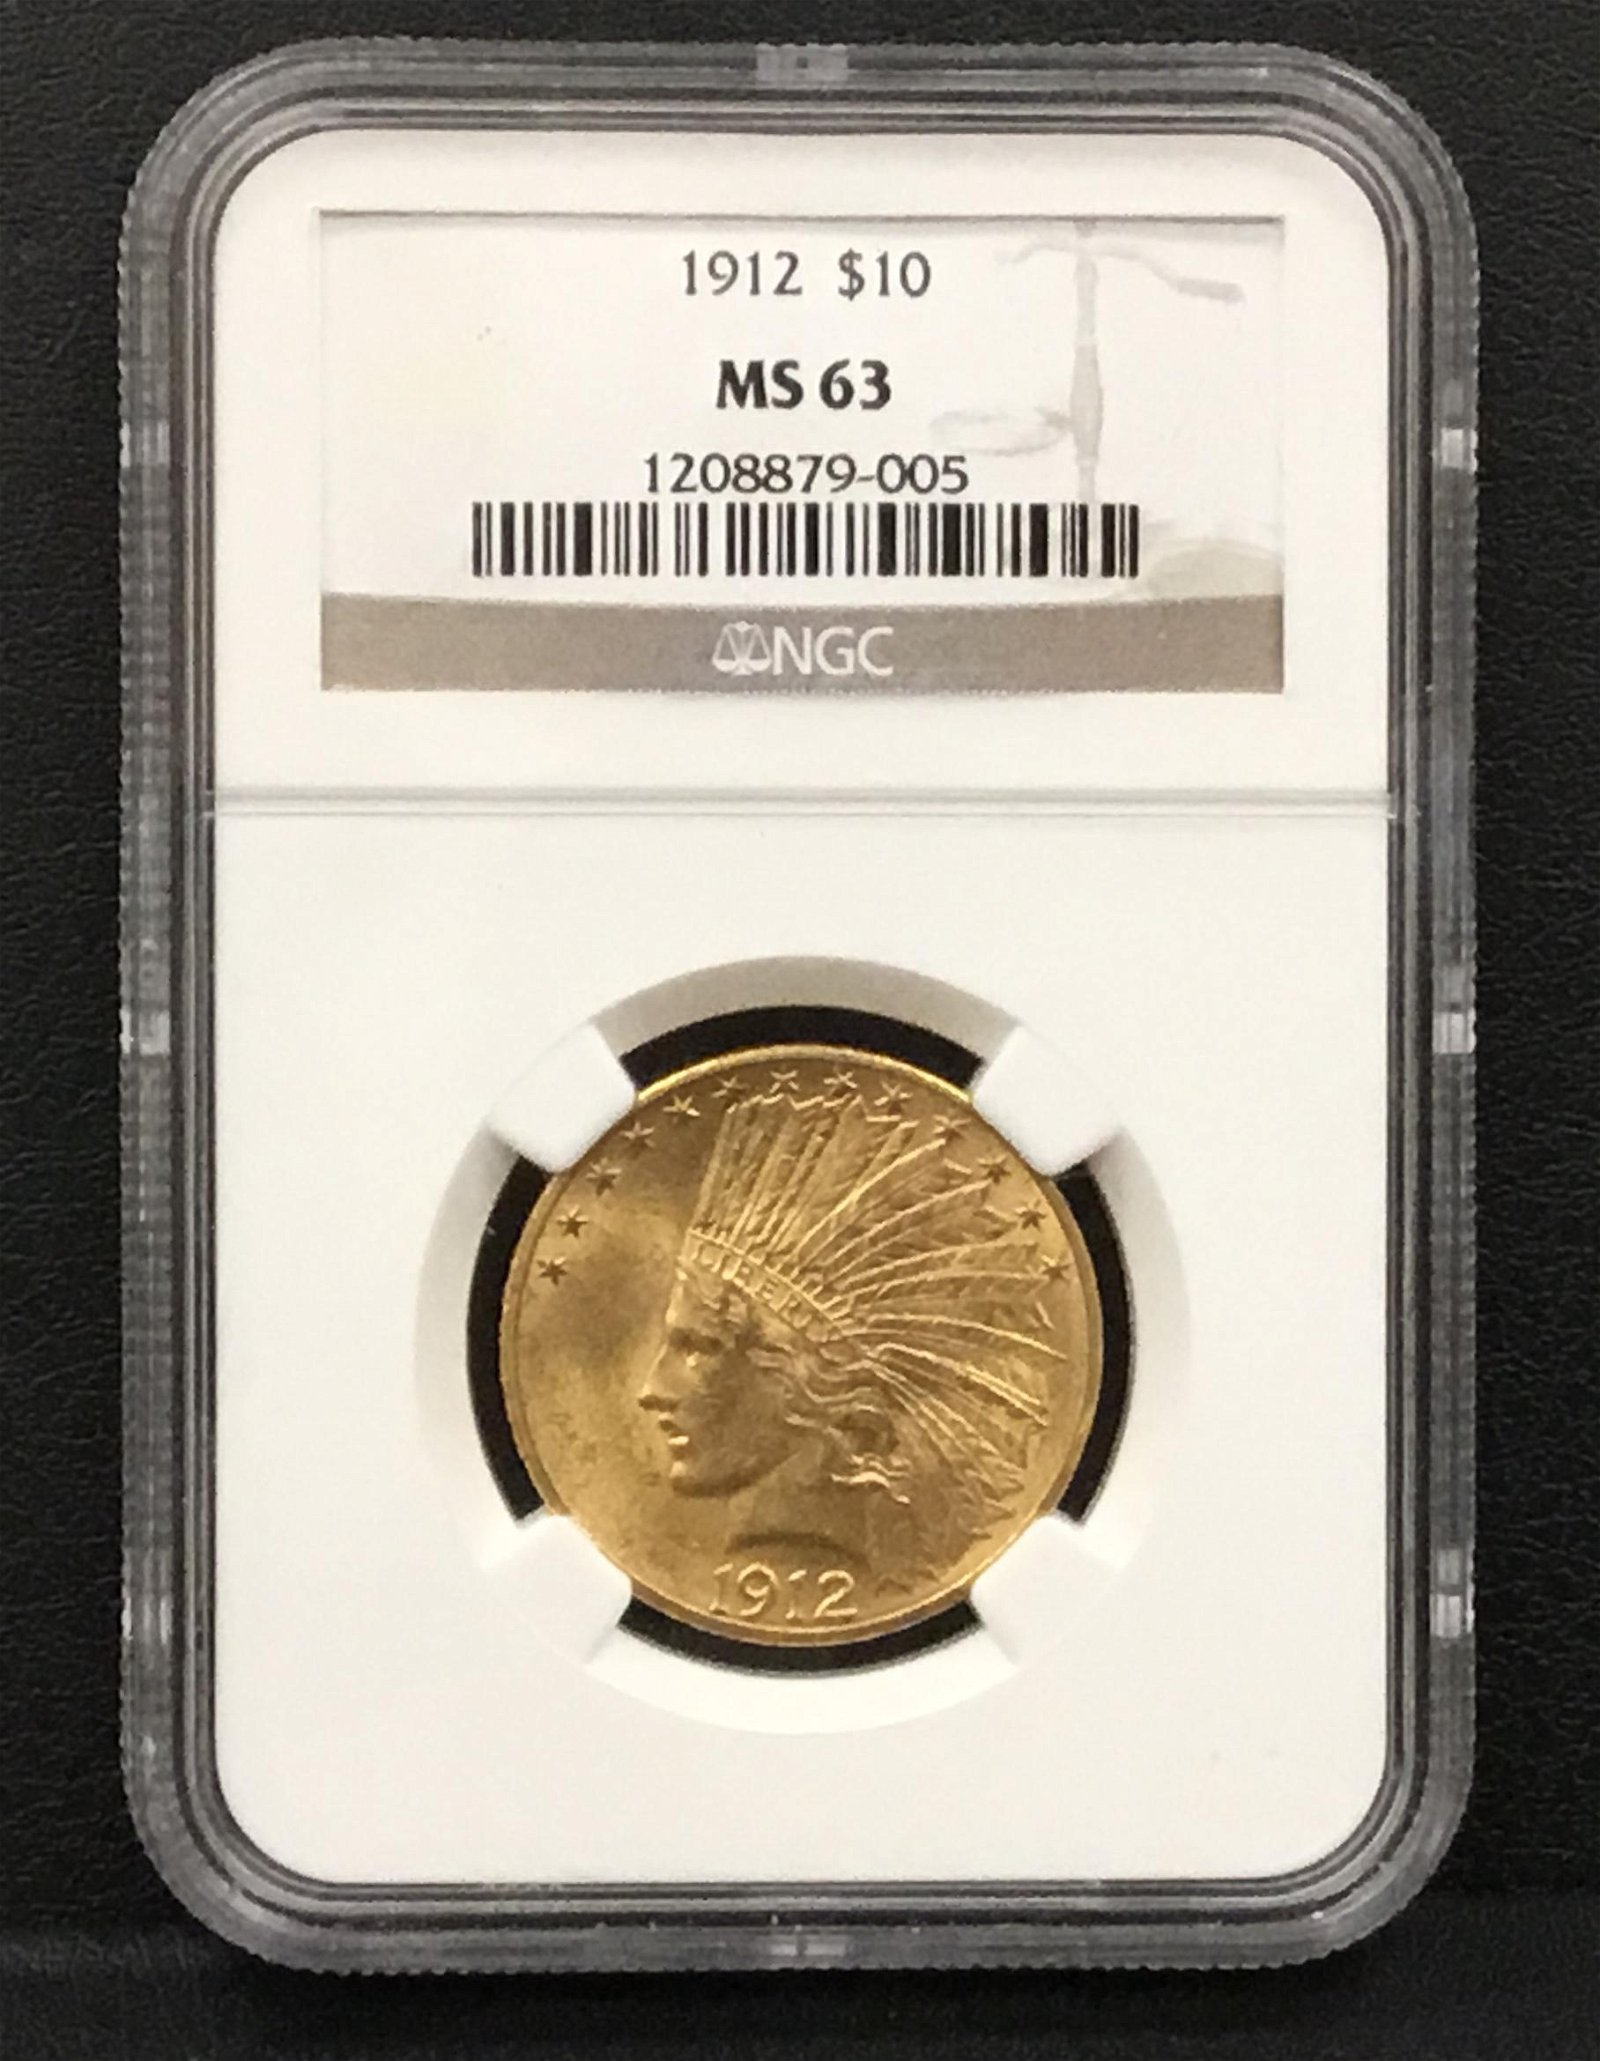 1912 $10 Indian Head Gold Coin